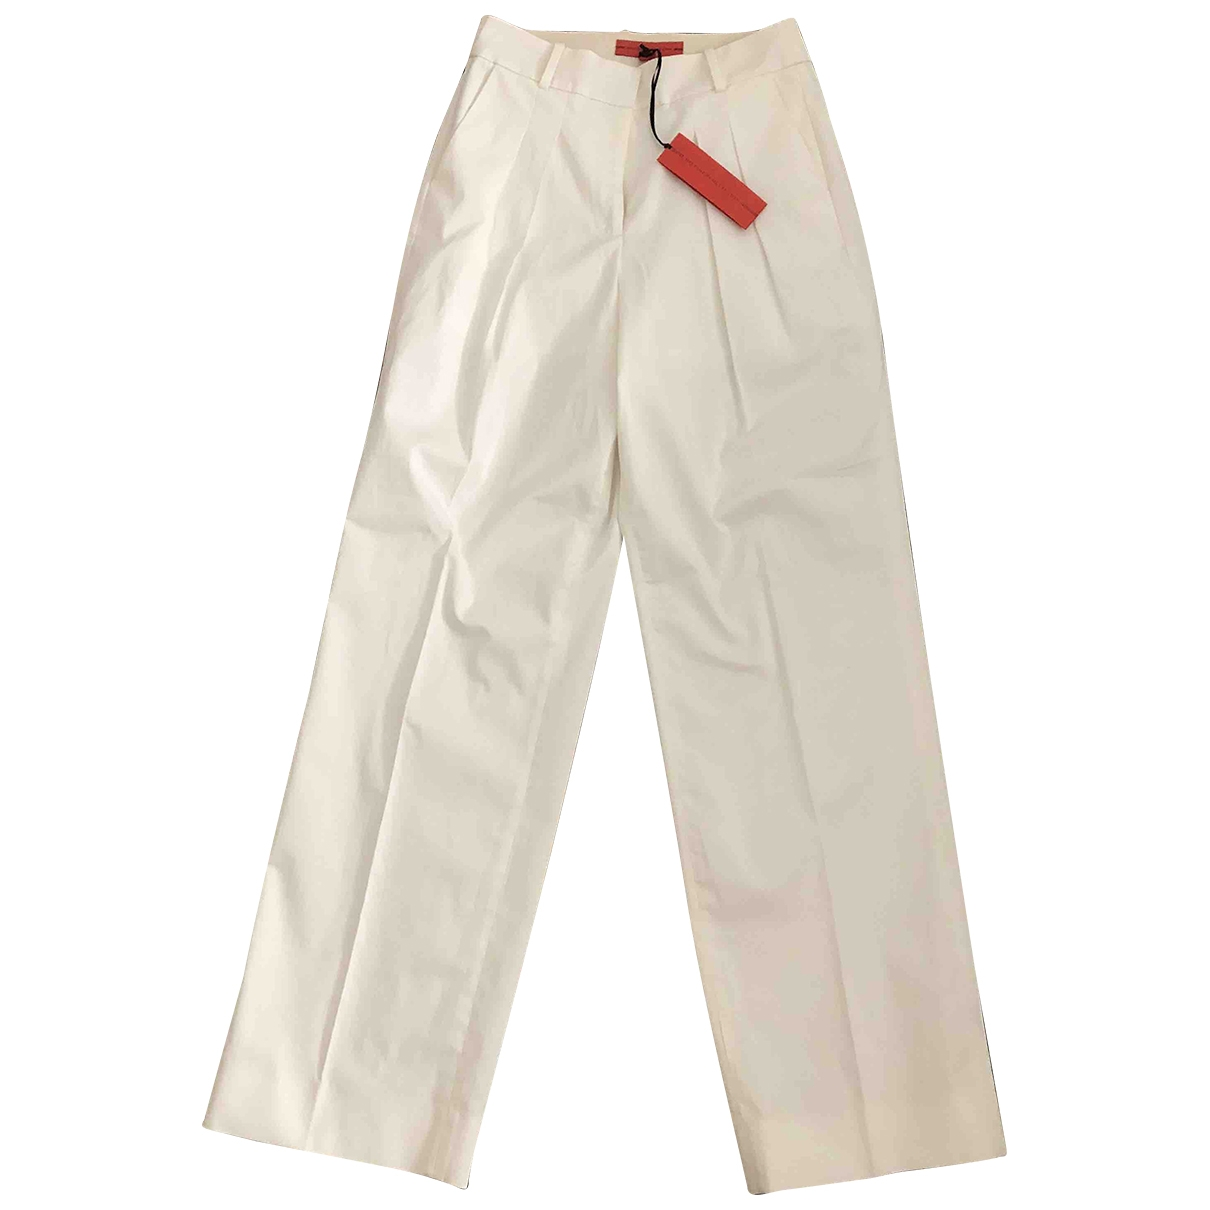 Hilfiger Collection \N White Cotton Trousers for Women 4 US